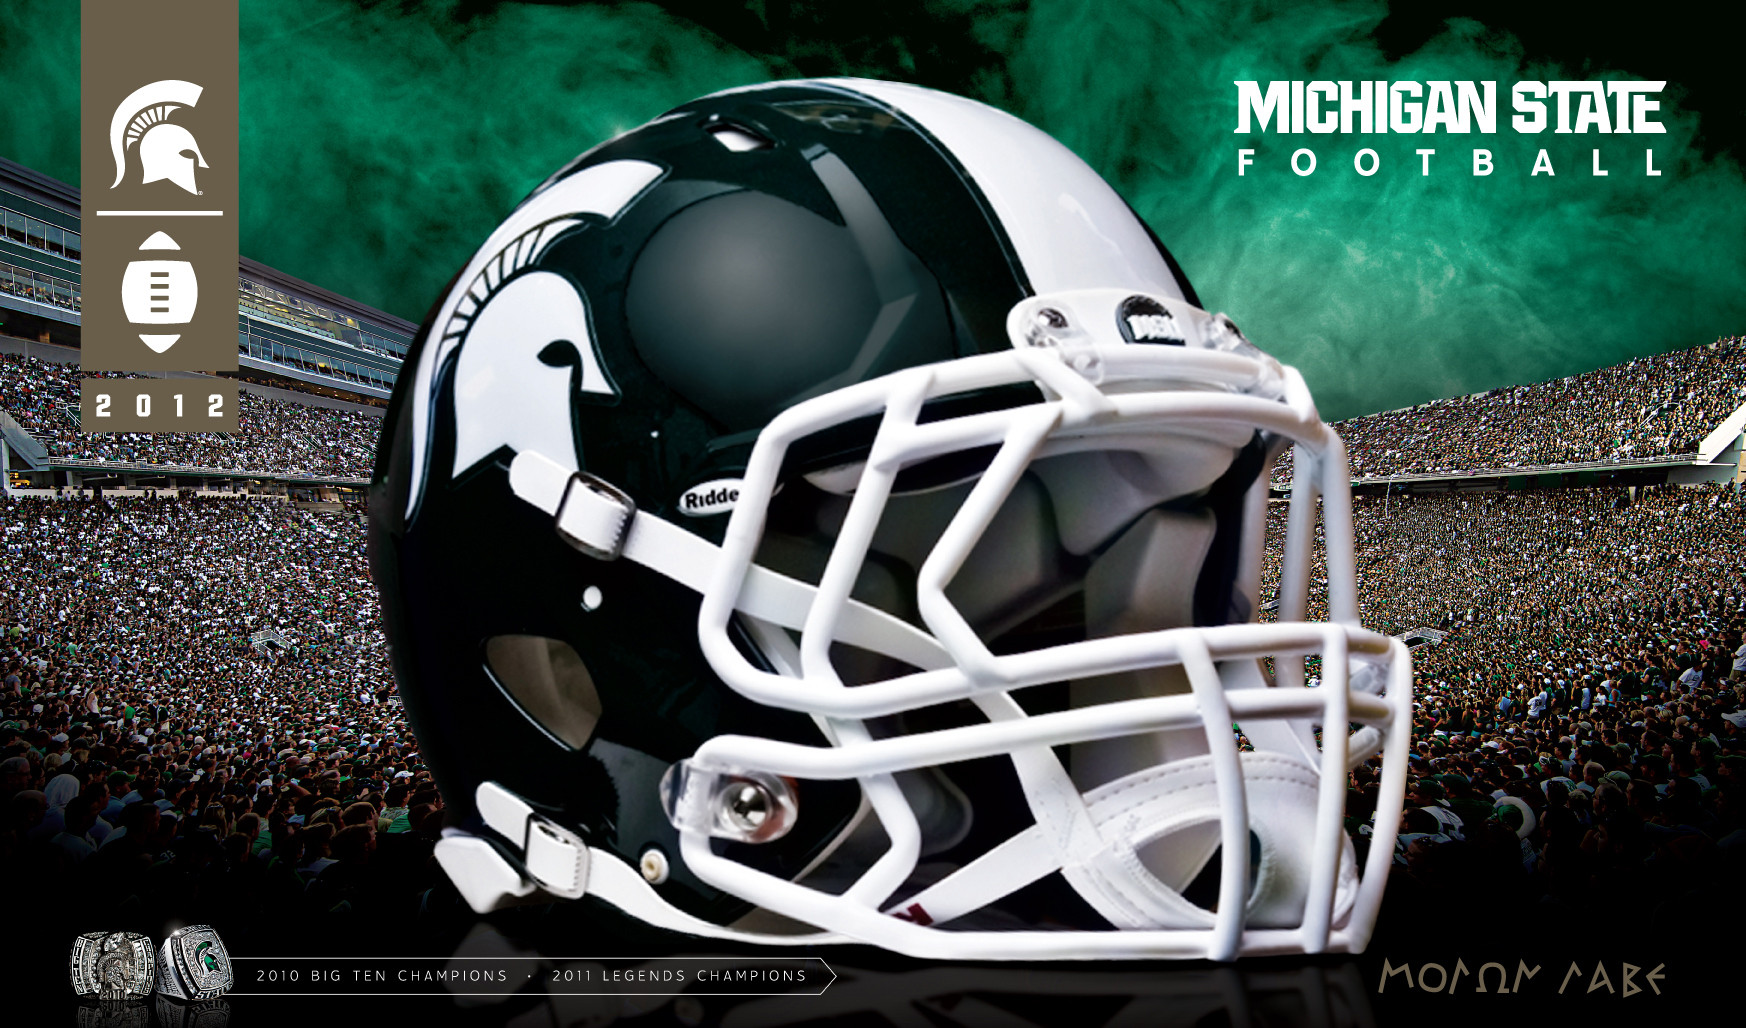 Michigan State Football PSP Themes Wallpapers 1746x1028